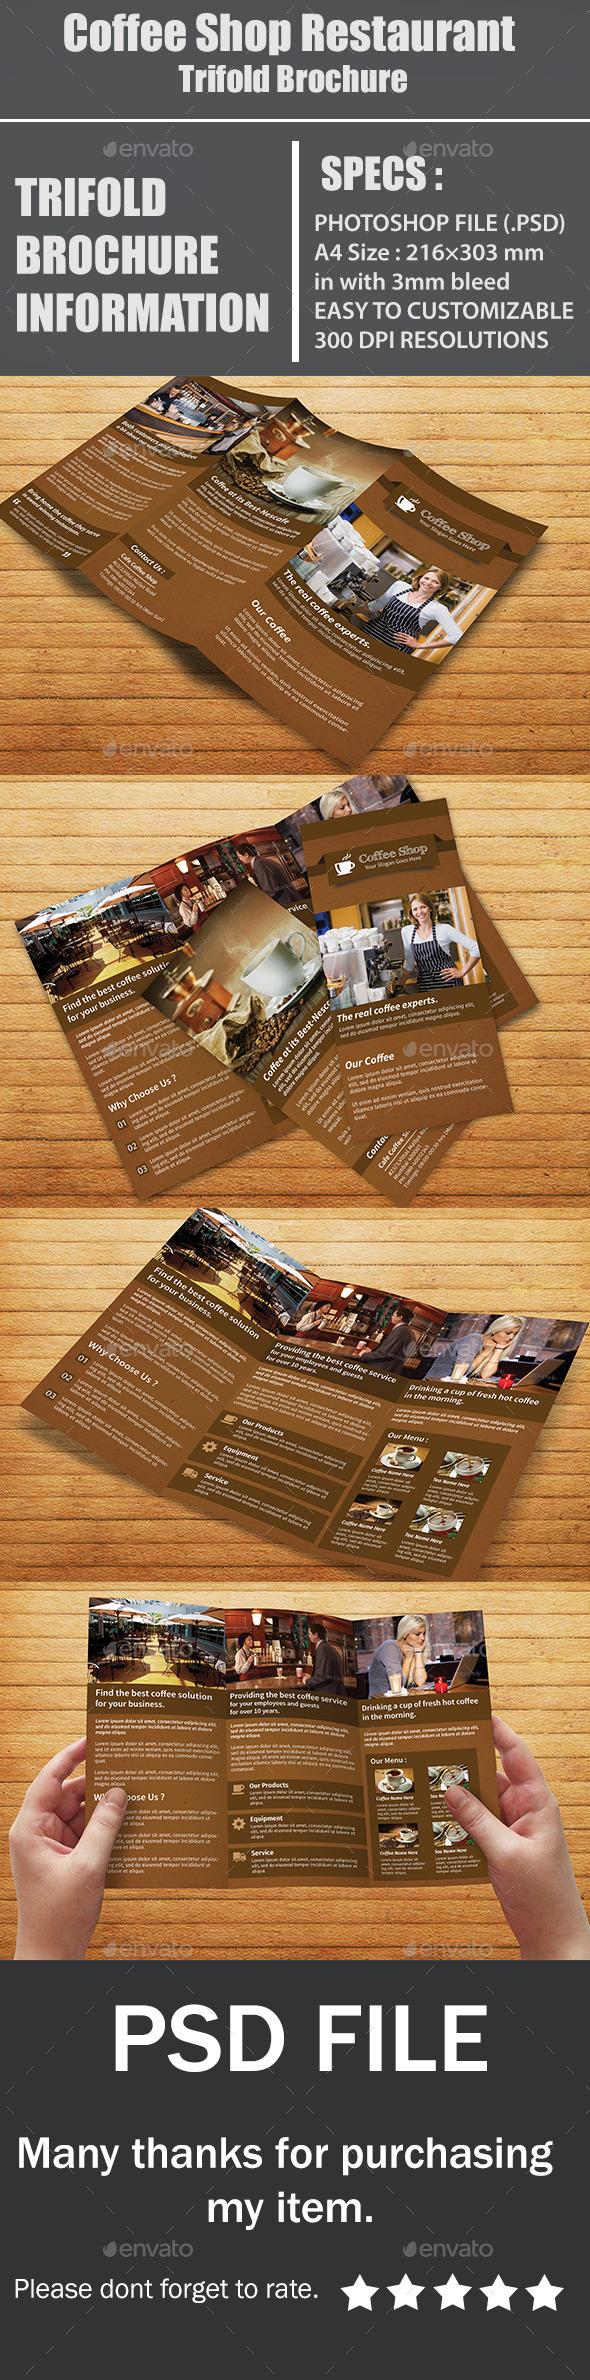 GraphicRiver Coffee Shop Restaurant Trifold Brochure 10699336